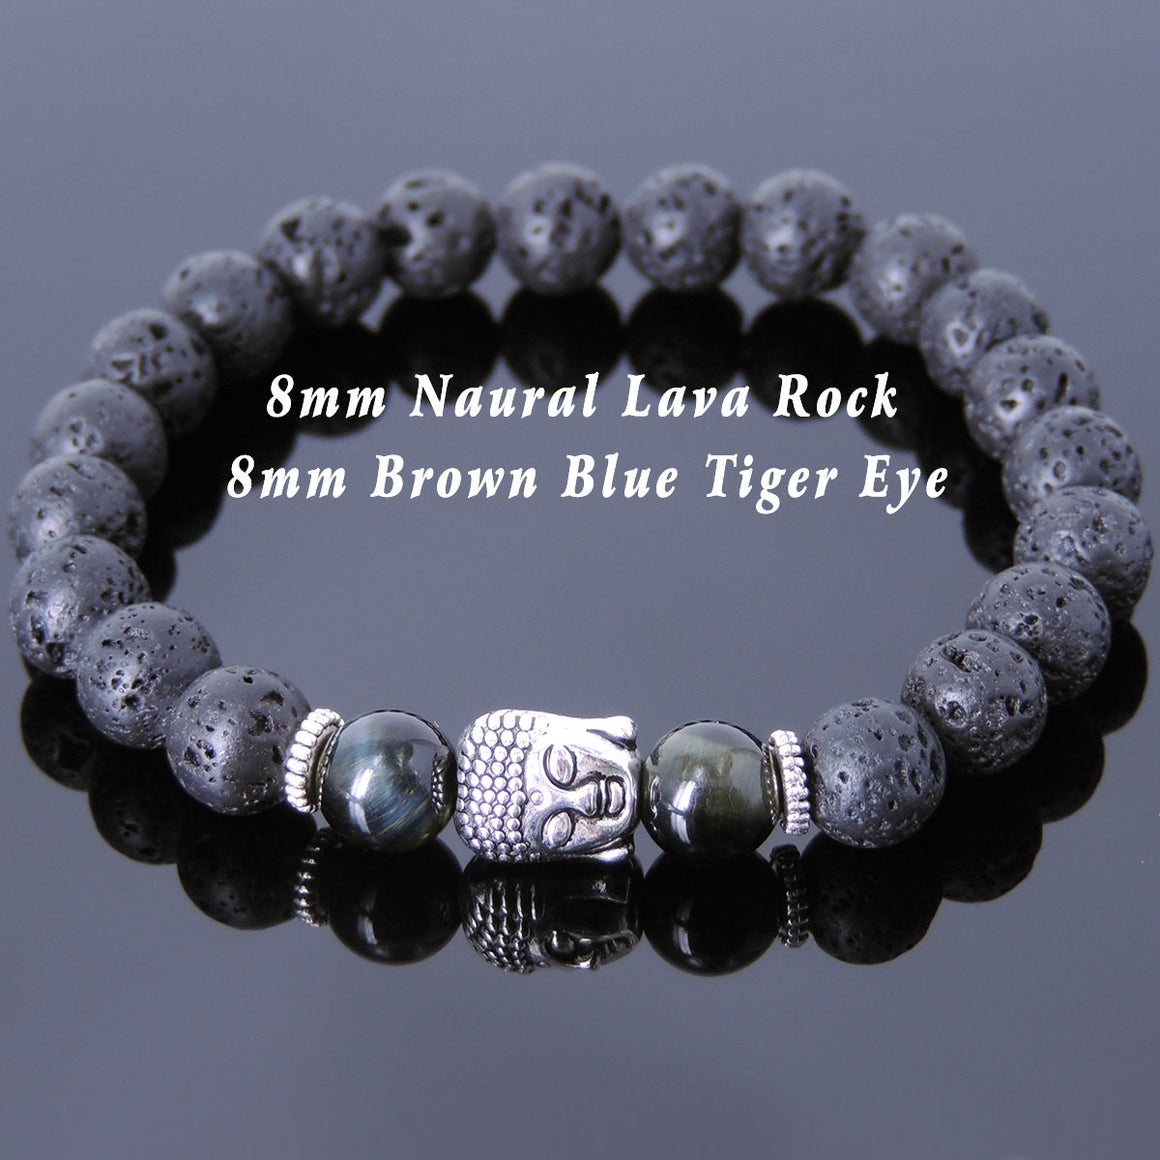 Brown Blue Tiger Eye & Lava Rock Healing Gemstone Bracelet with Tibetan Silver Sakyamuni Buddha & Spacers - Handmade by Gem & Silver TSB155